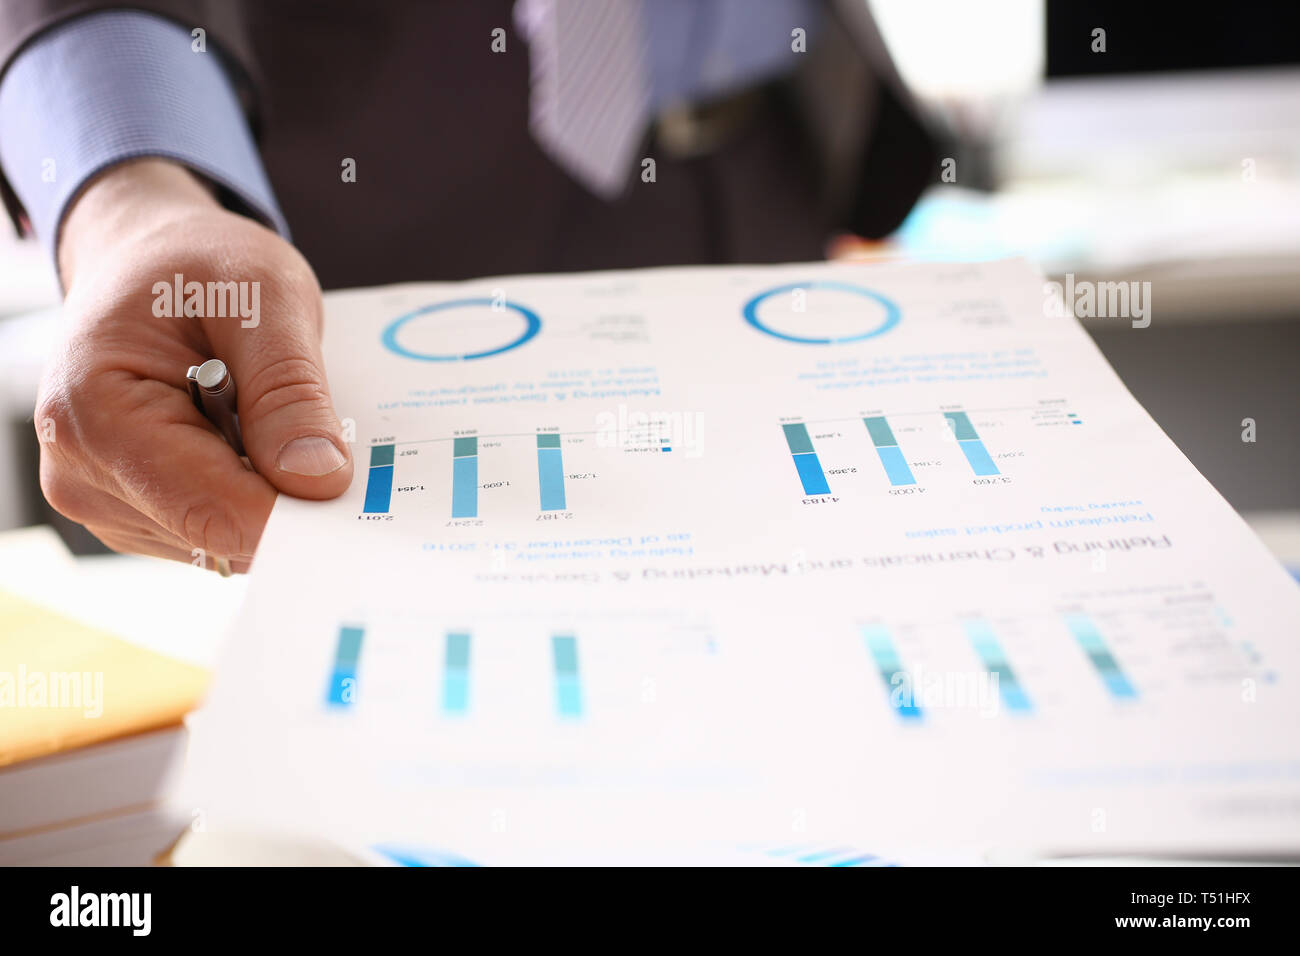 Auditor Calculating Tax Income Using Business Data - Stock Image